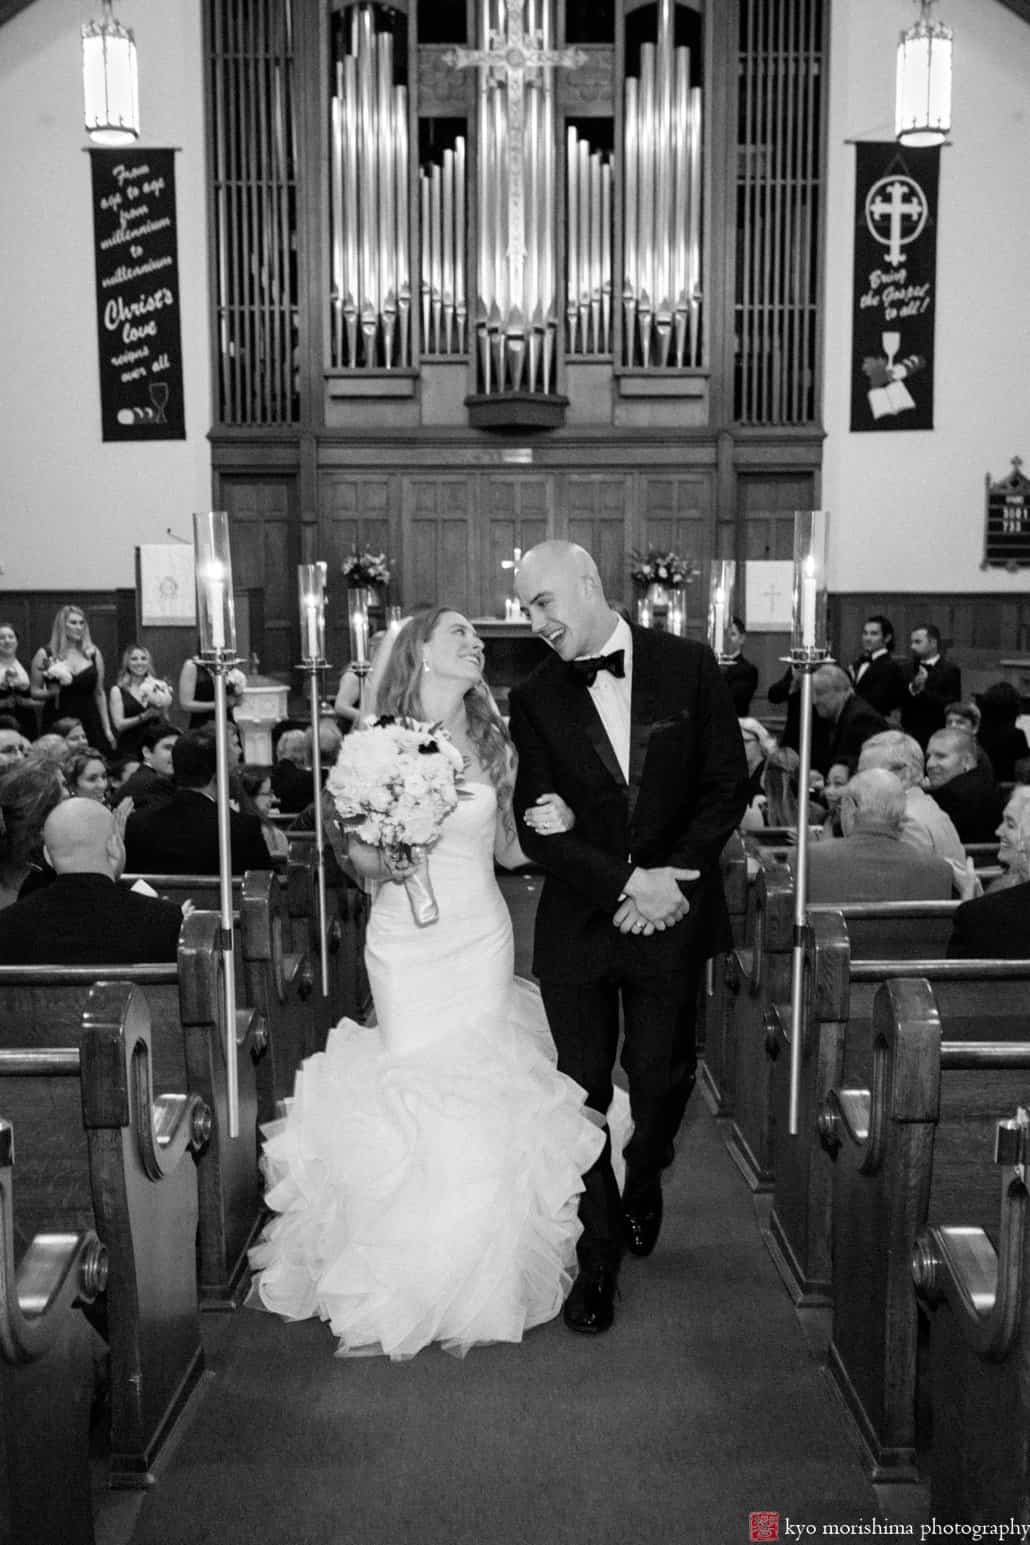 Bride and groom glance happily at each other as they depart Princeton United Methodist Church wedding